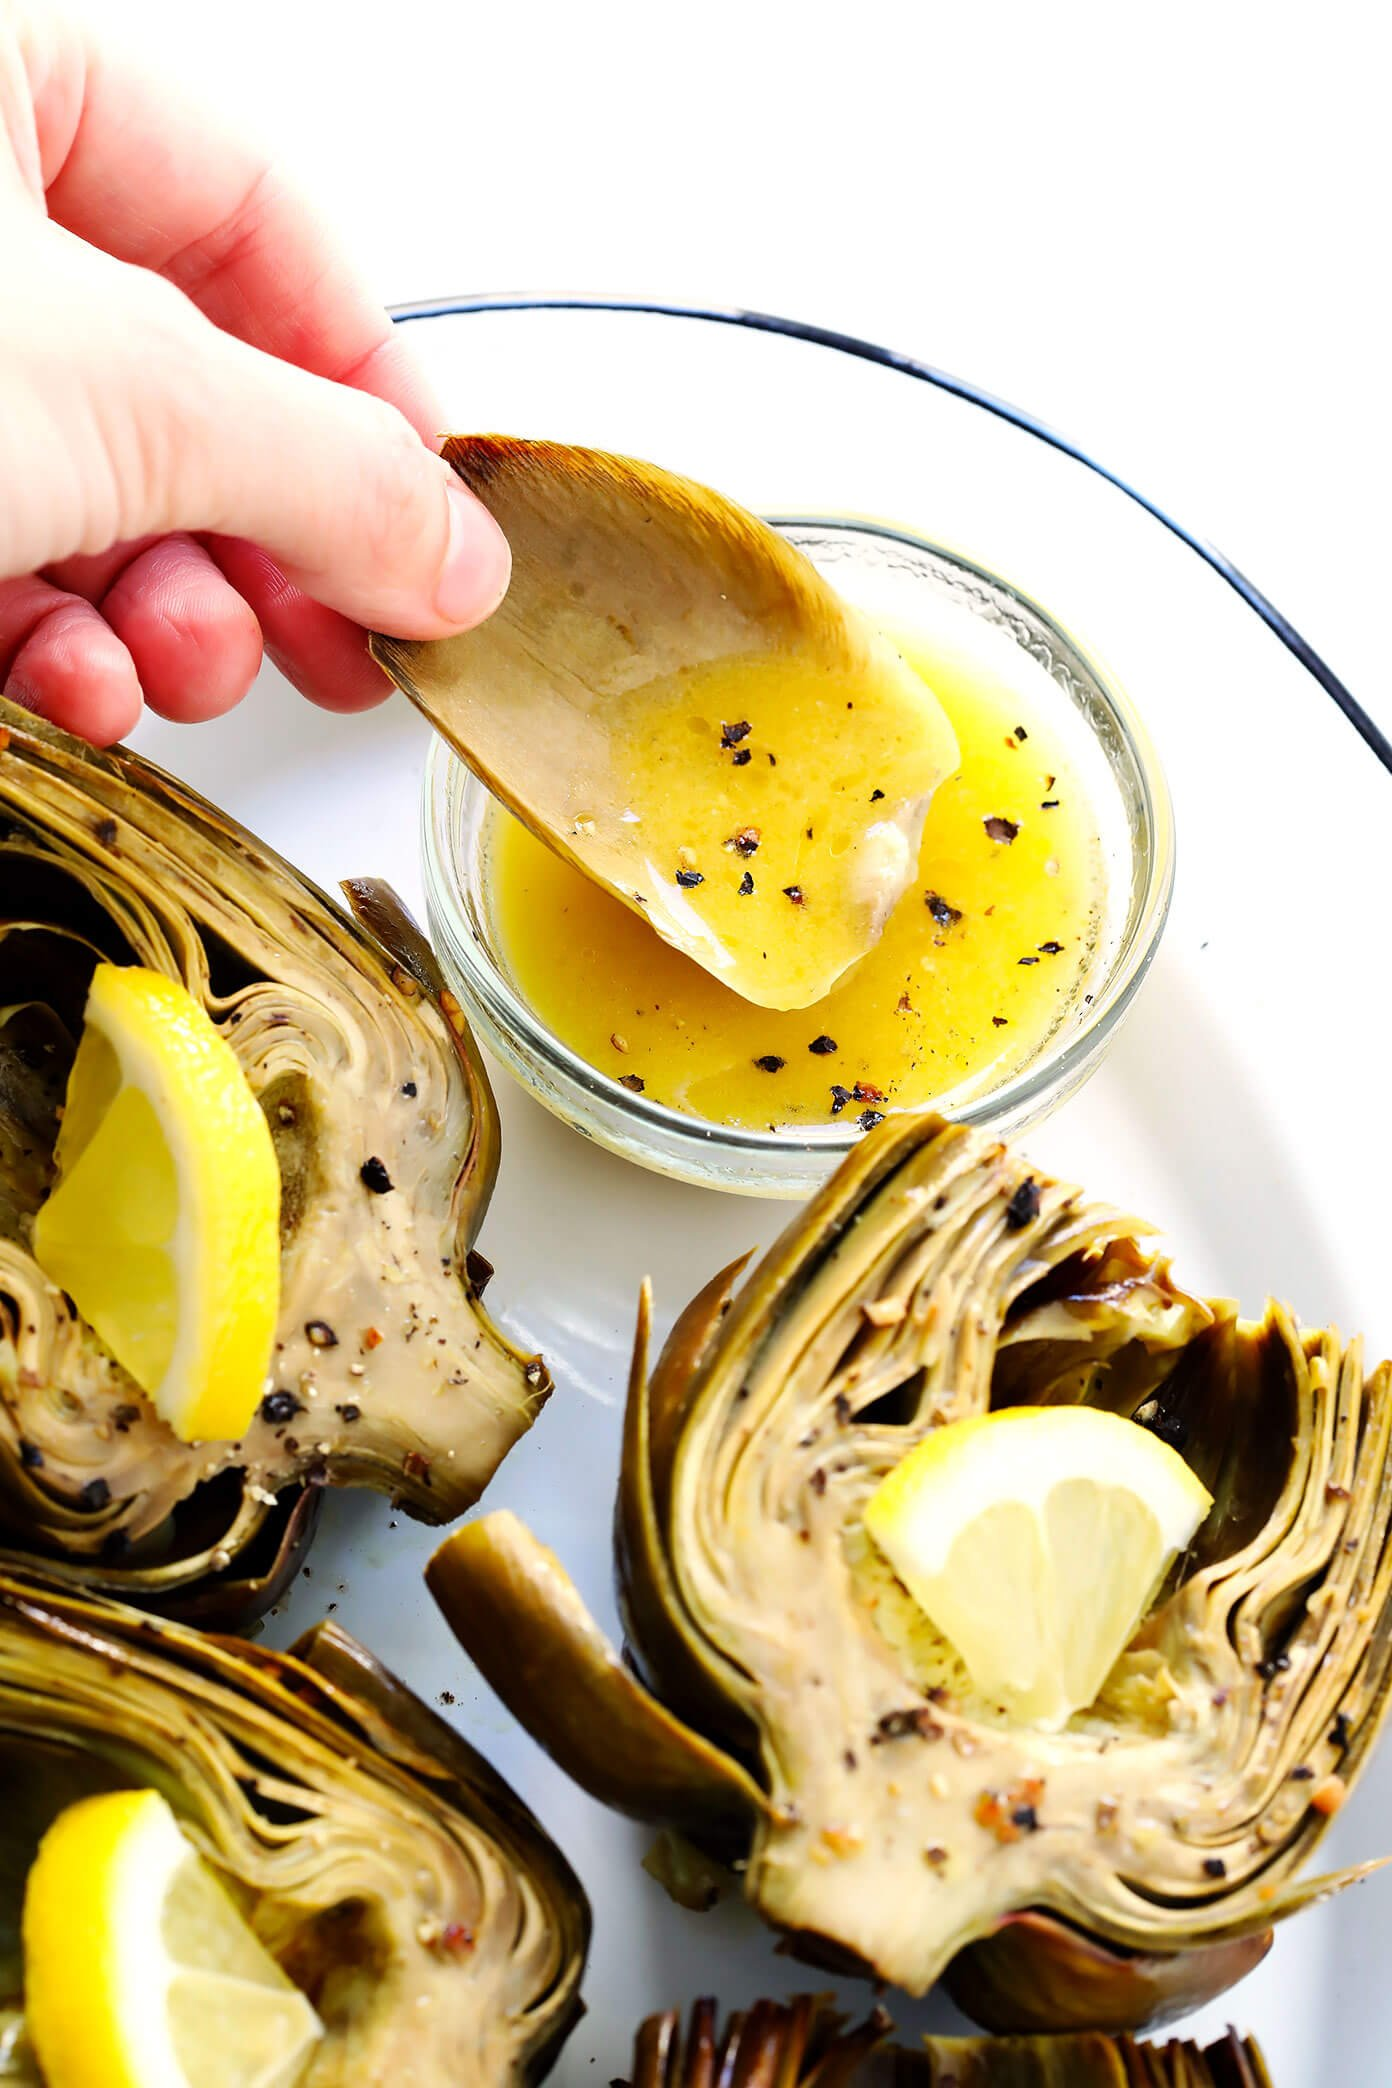 Oven Roasted Artichokes with Lemon Butter Dipping Sauce